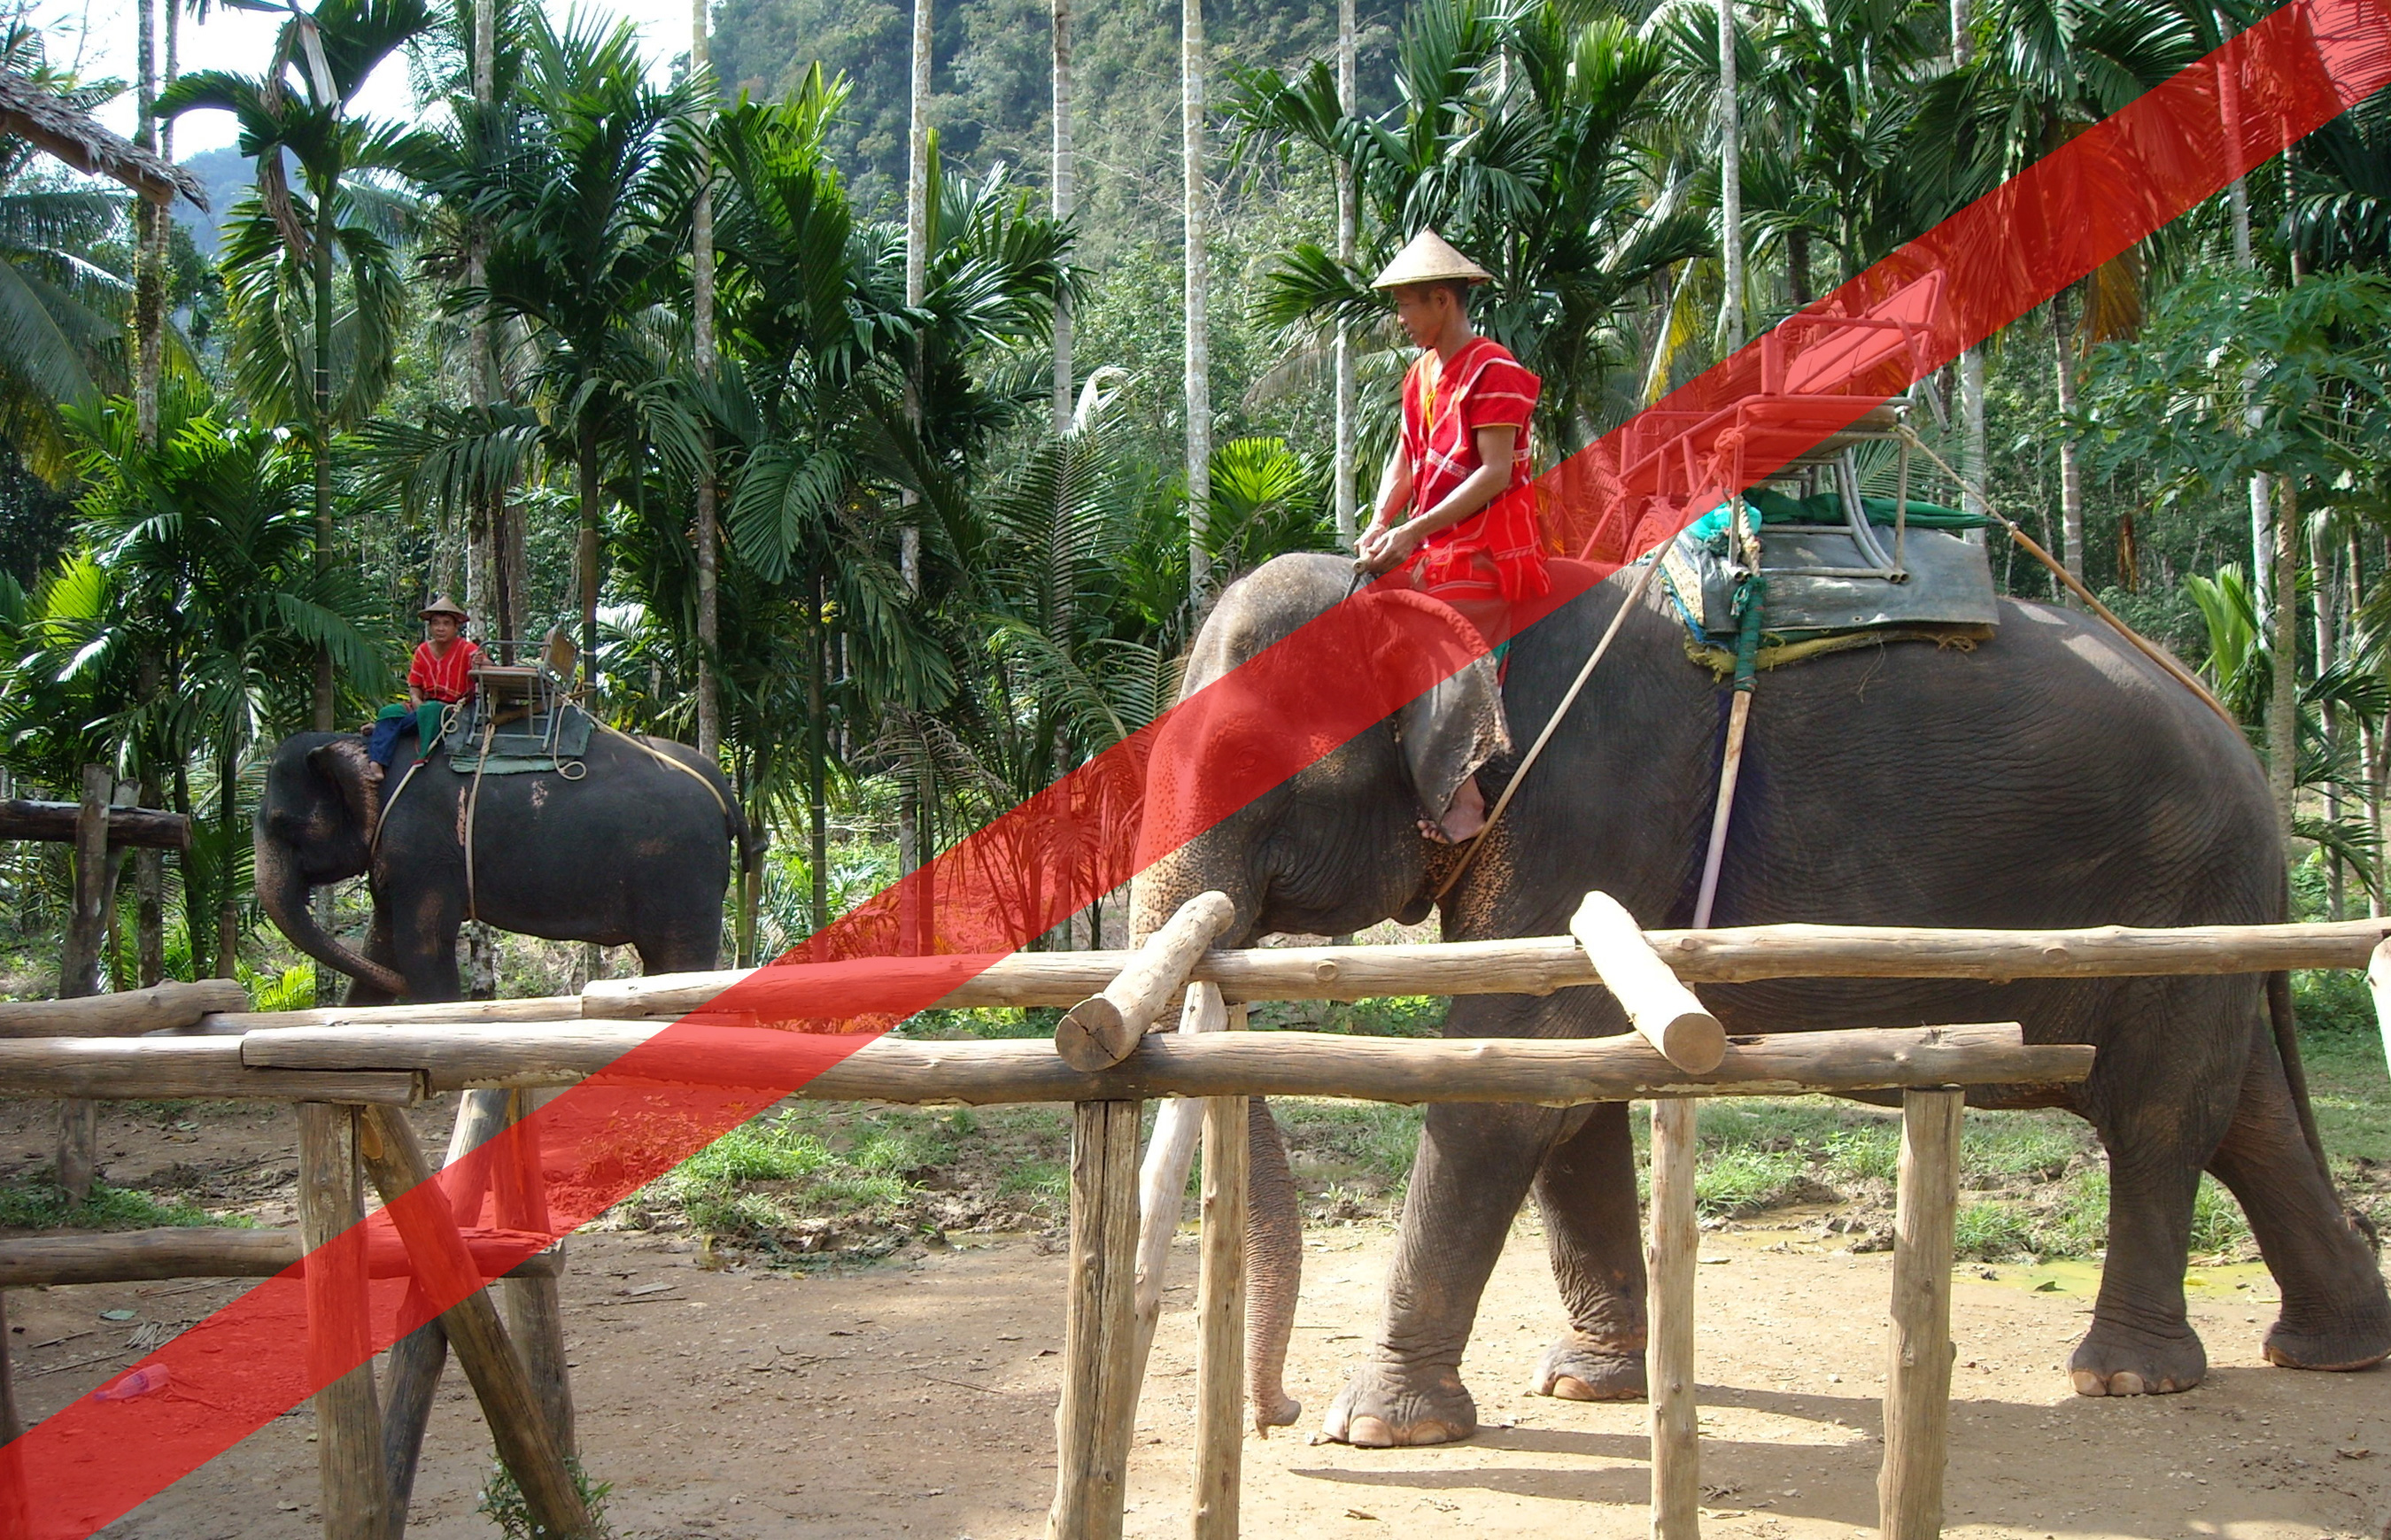 How to see elephants in the right way, without the abuse